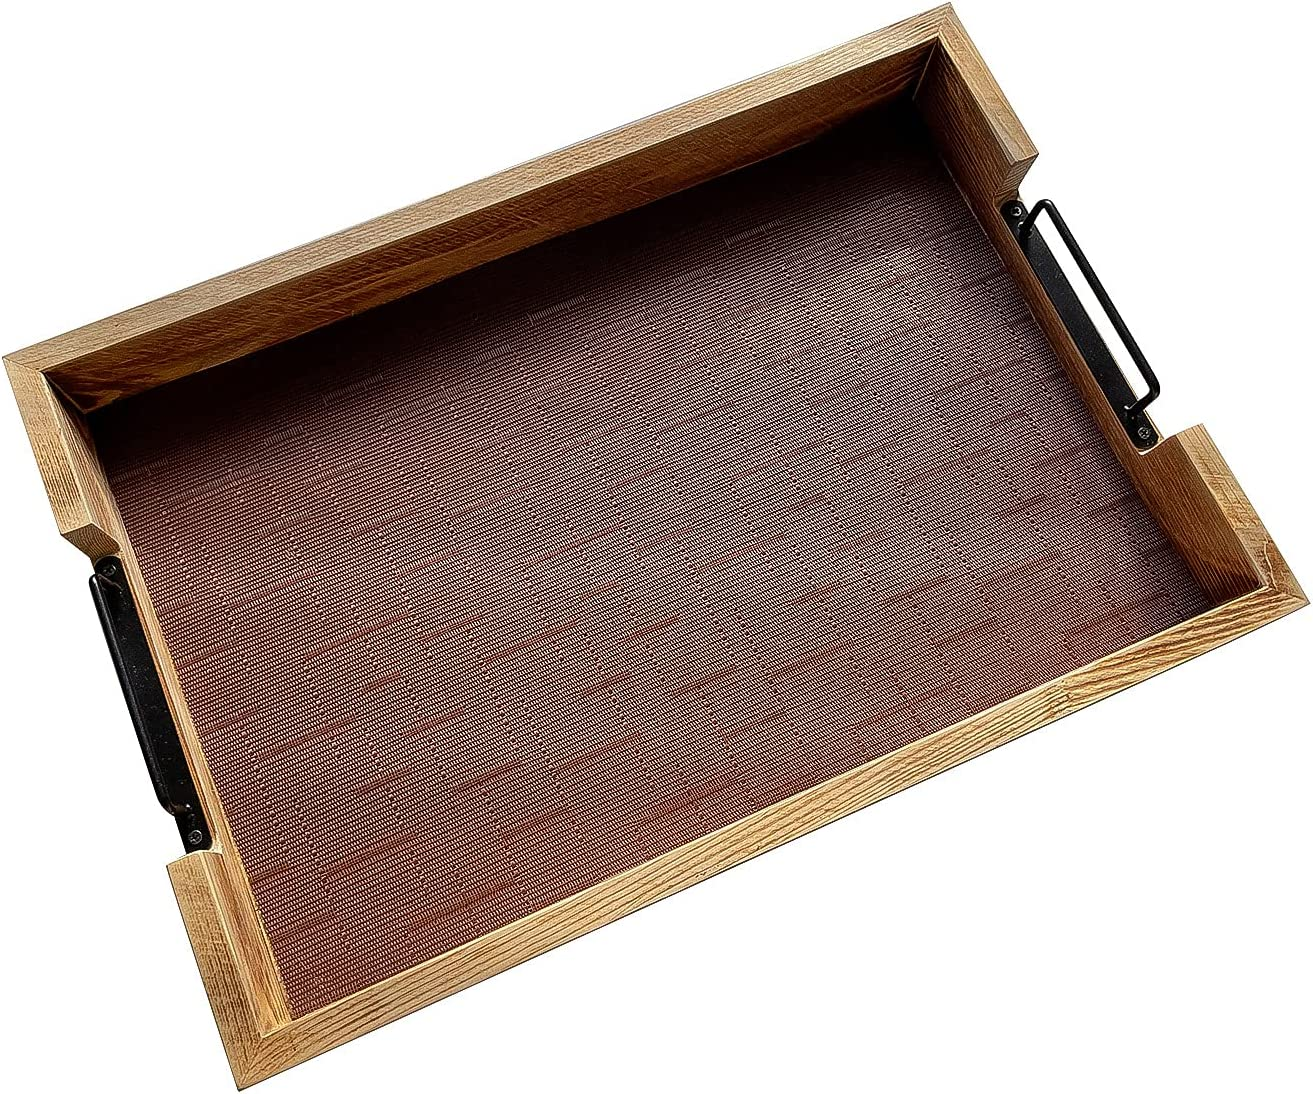 Large Wood Coffee Table Tray Handles Textured with Popular shop is the lowest High order price challenge Serving